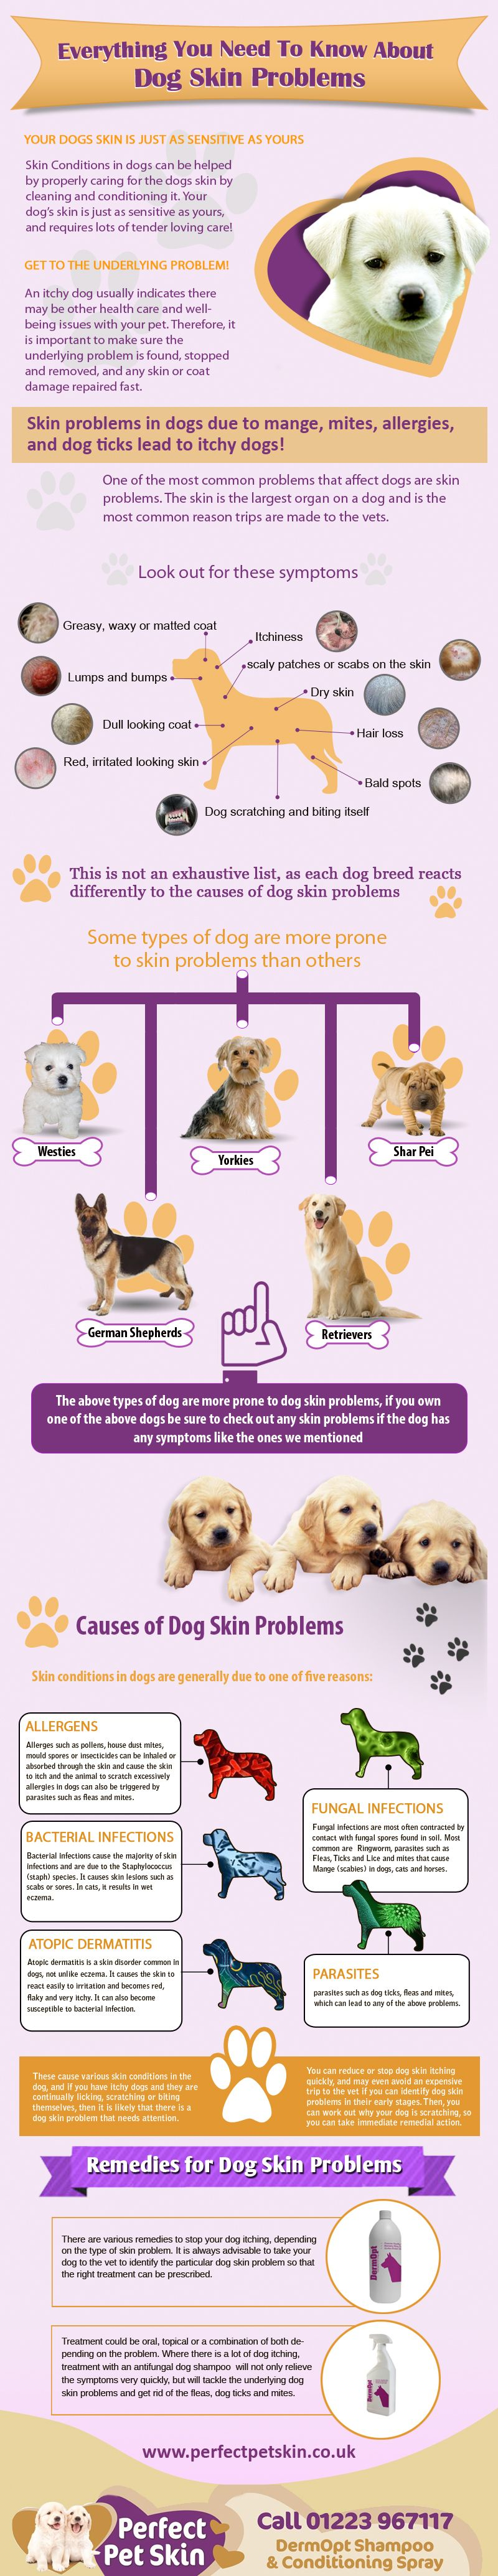 Dog Skin Problems Are Very Common This Infographic Will Help You